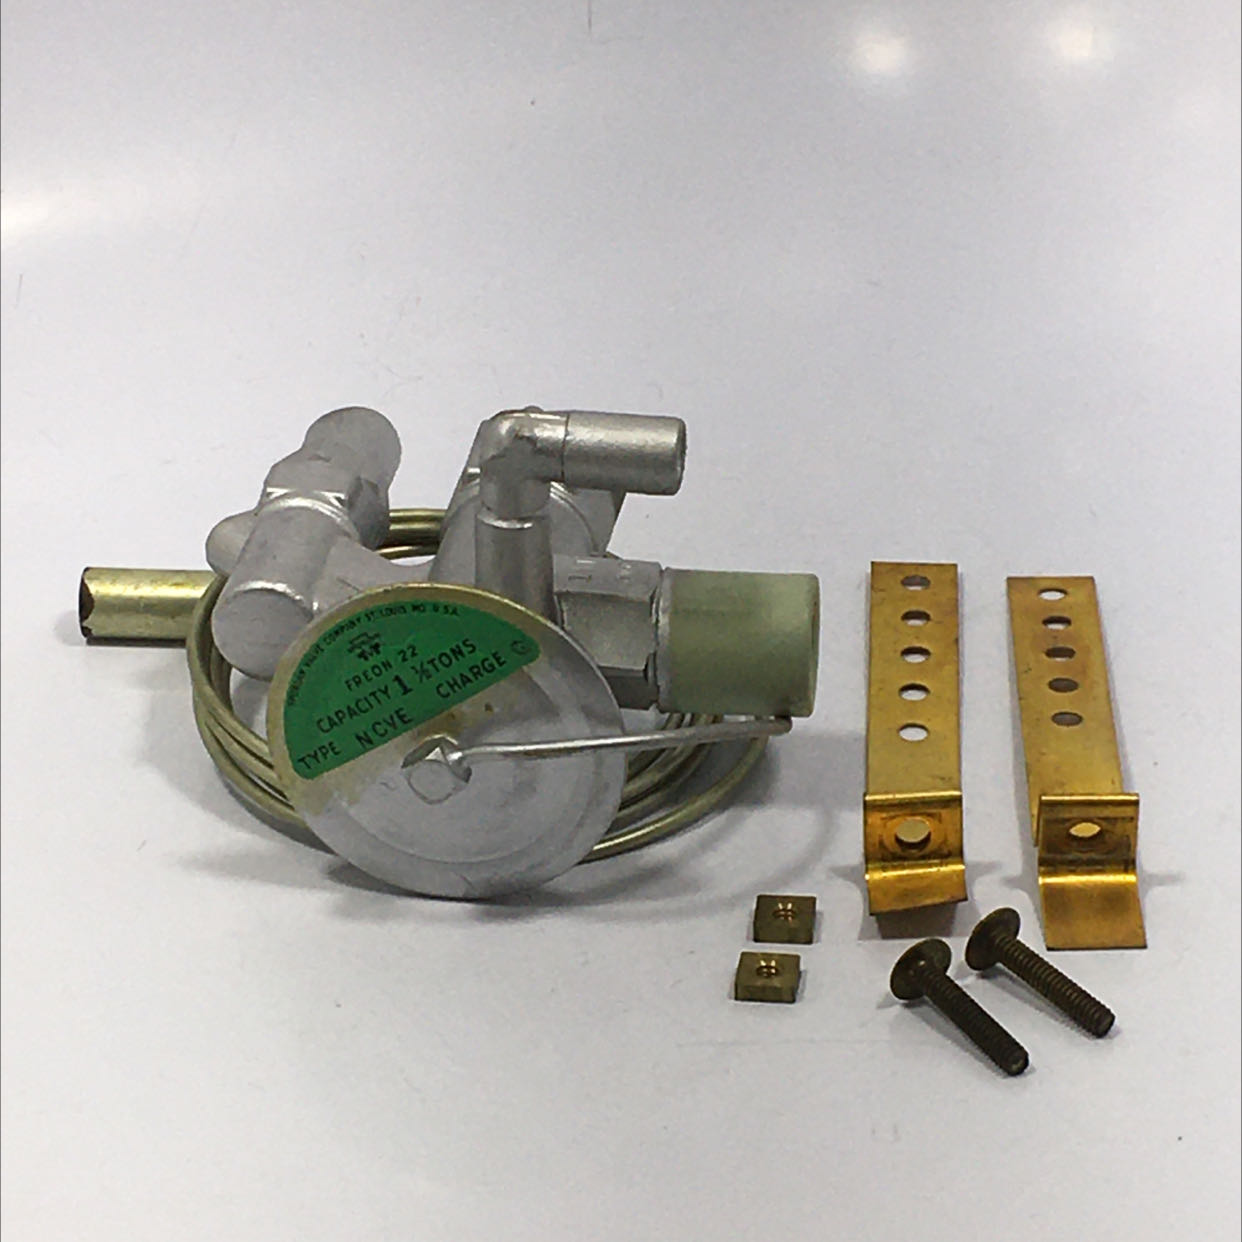 Sporlan Valve Co NCVE Freon-22 Capacity 1-1/2 Tons Charge G